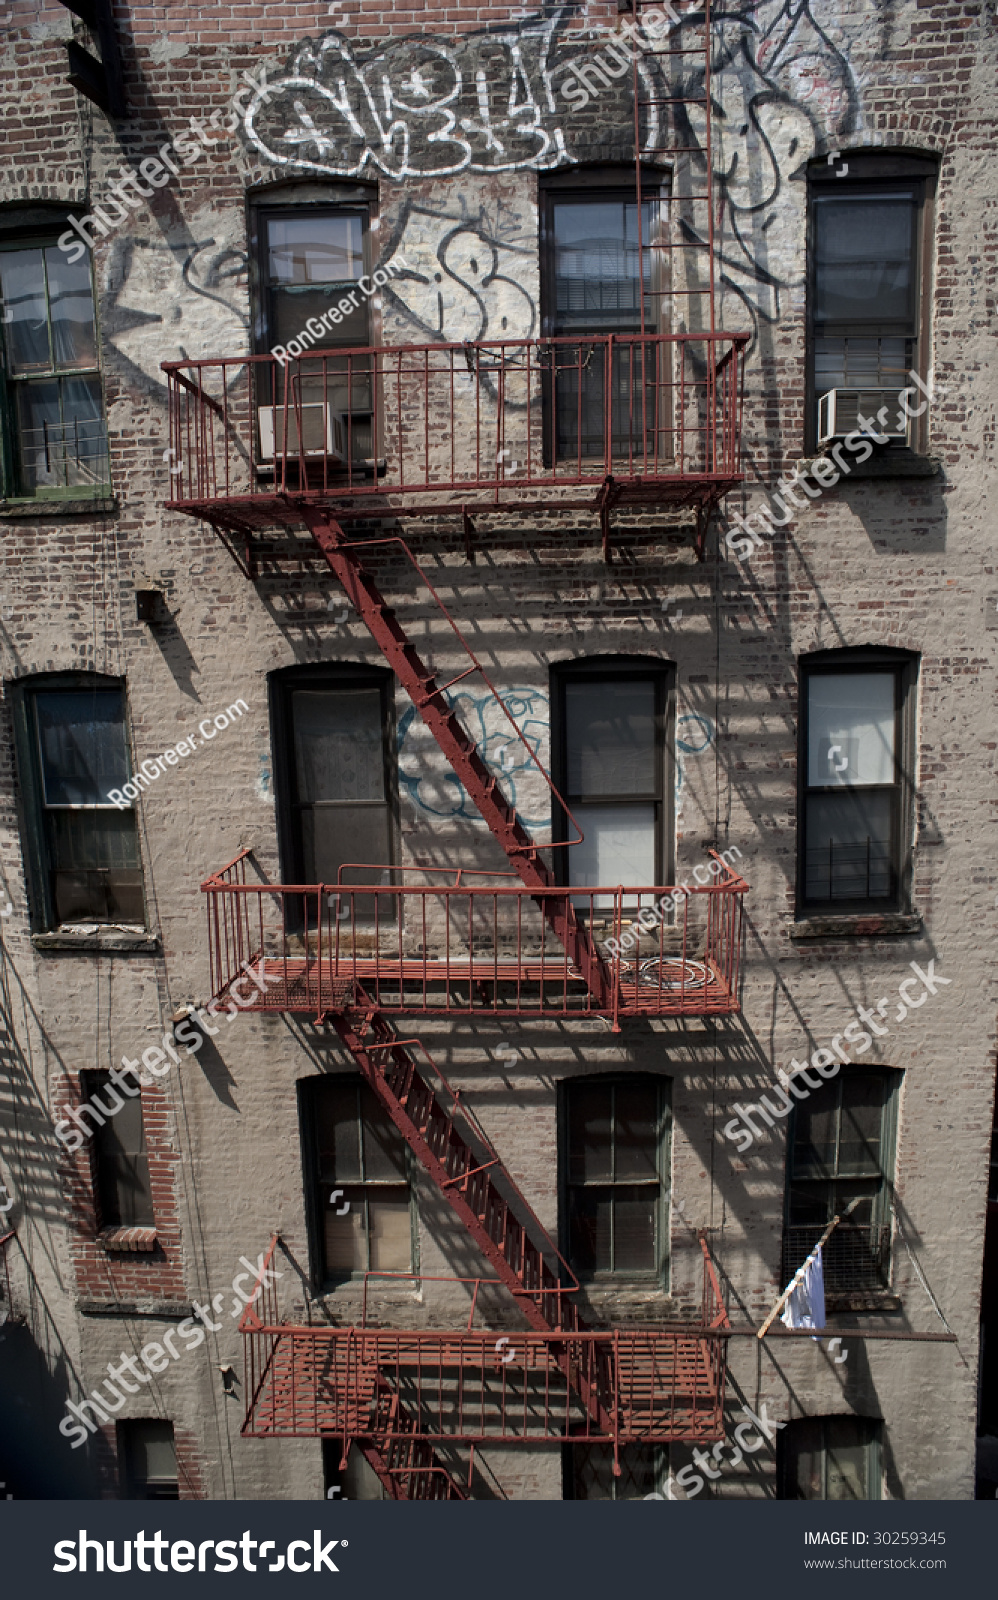 Old Brick Apartment Building With Fire Escape And Graffiti., New York City Part 76